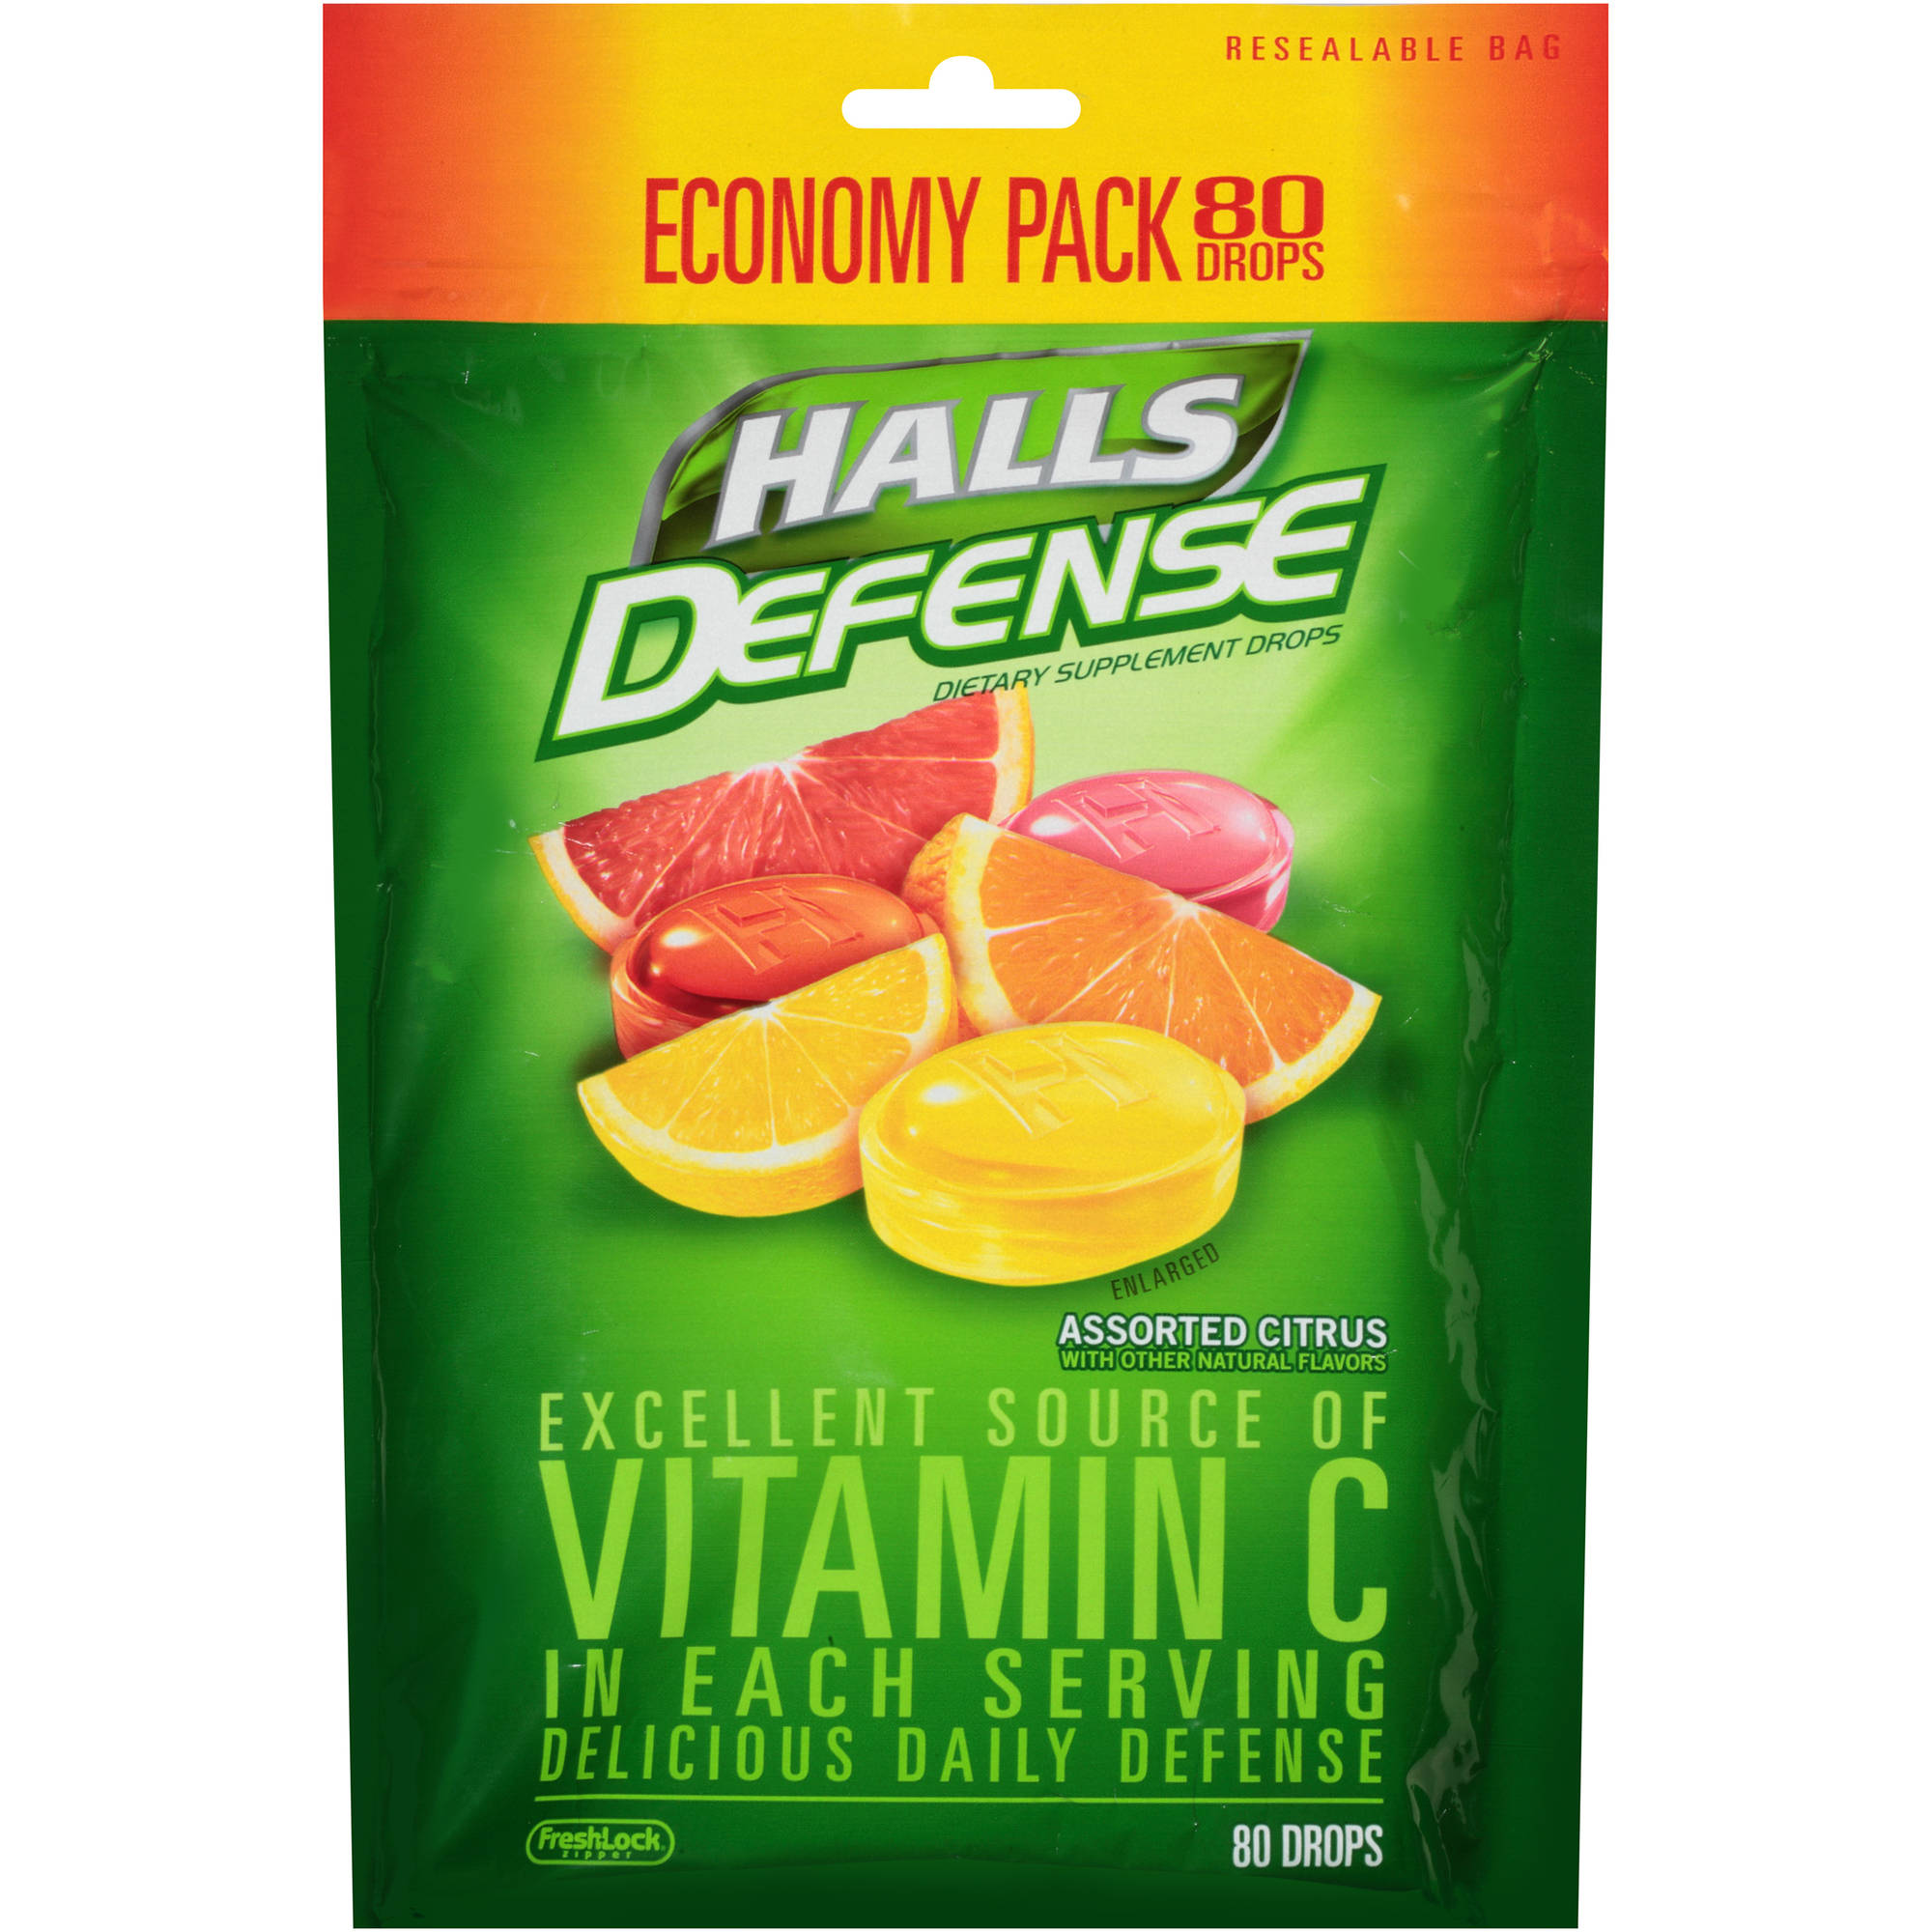 Halls Defense Assorted Citrus Vitamin C Supplement Dietary Supplement Drops, 80 count